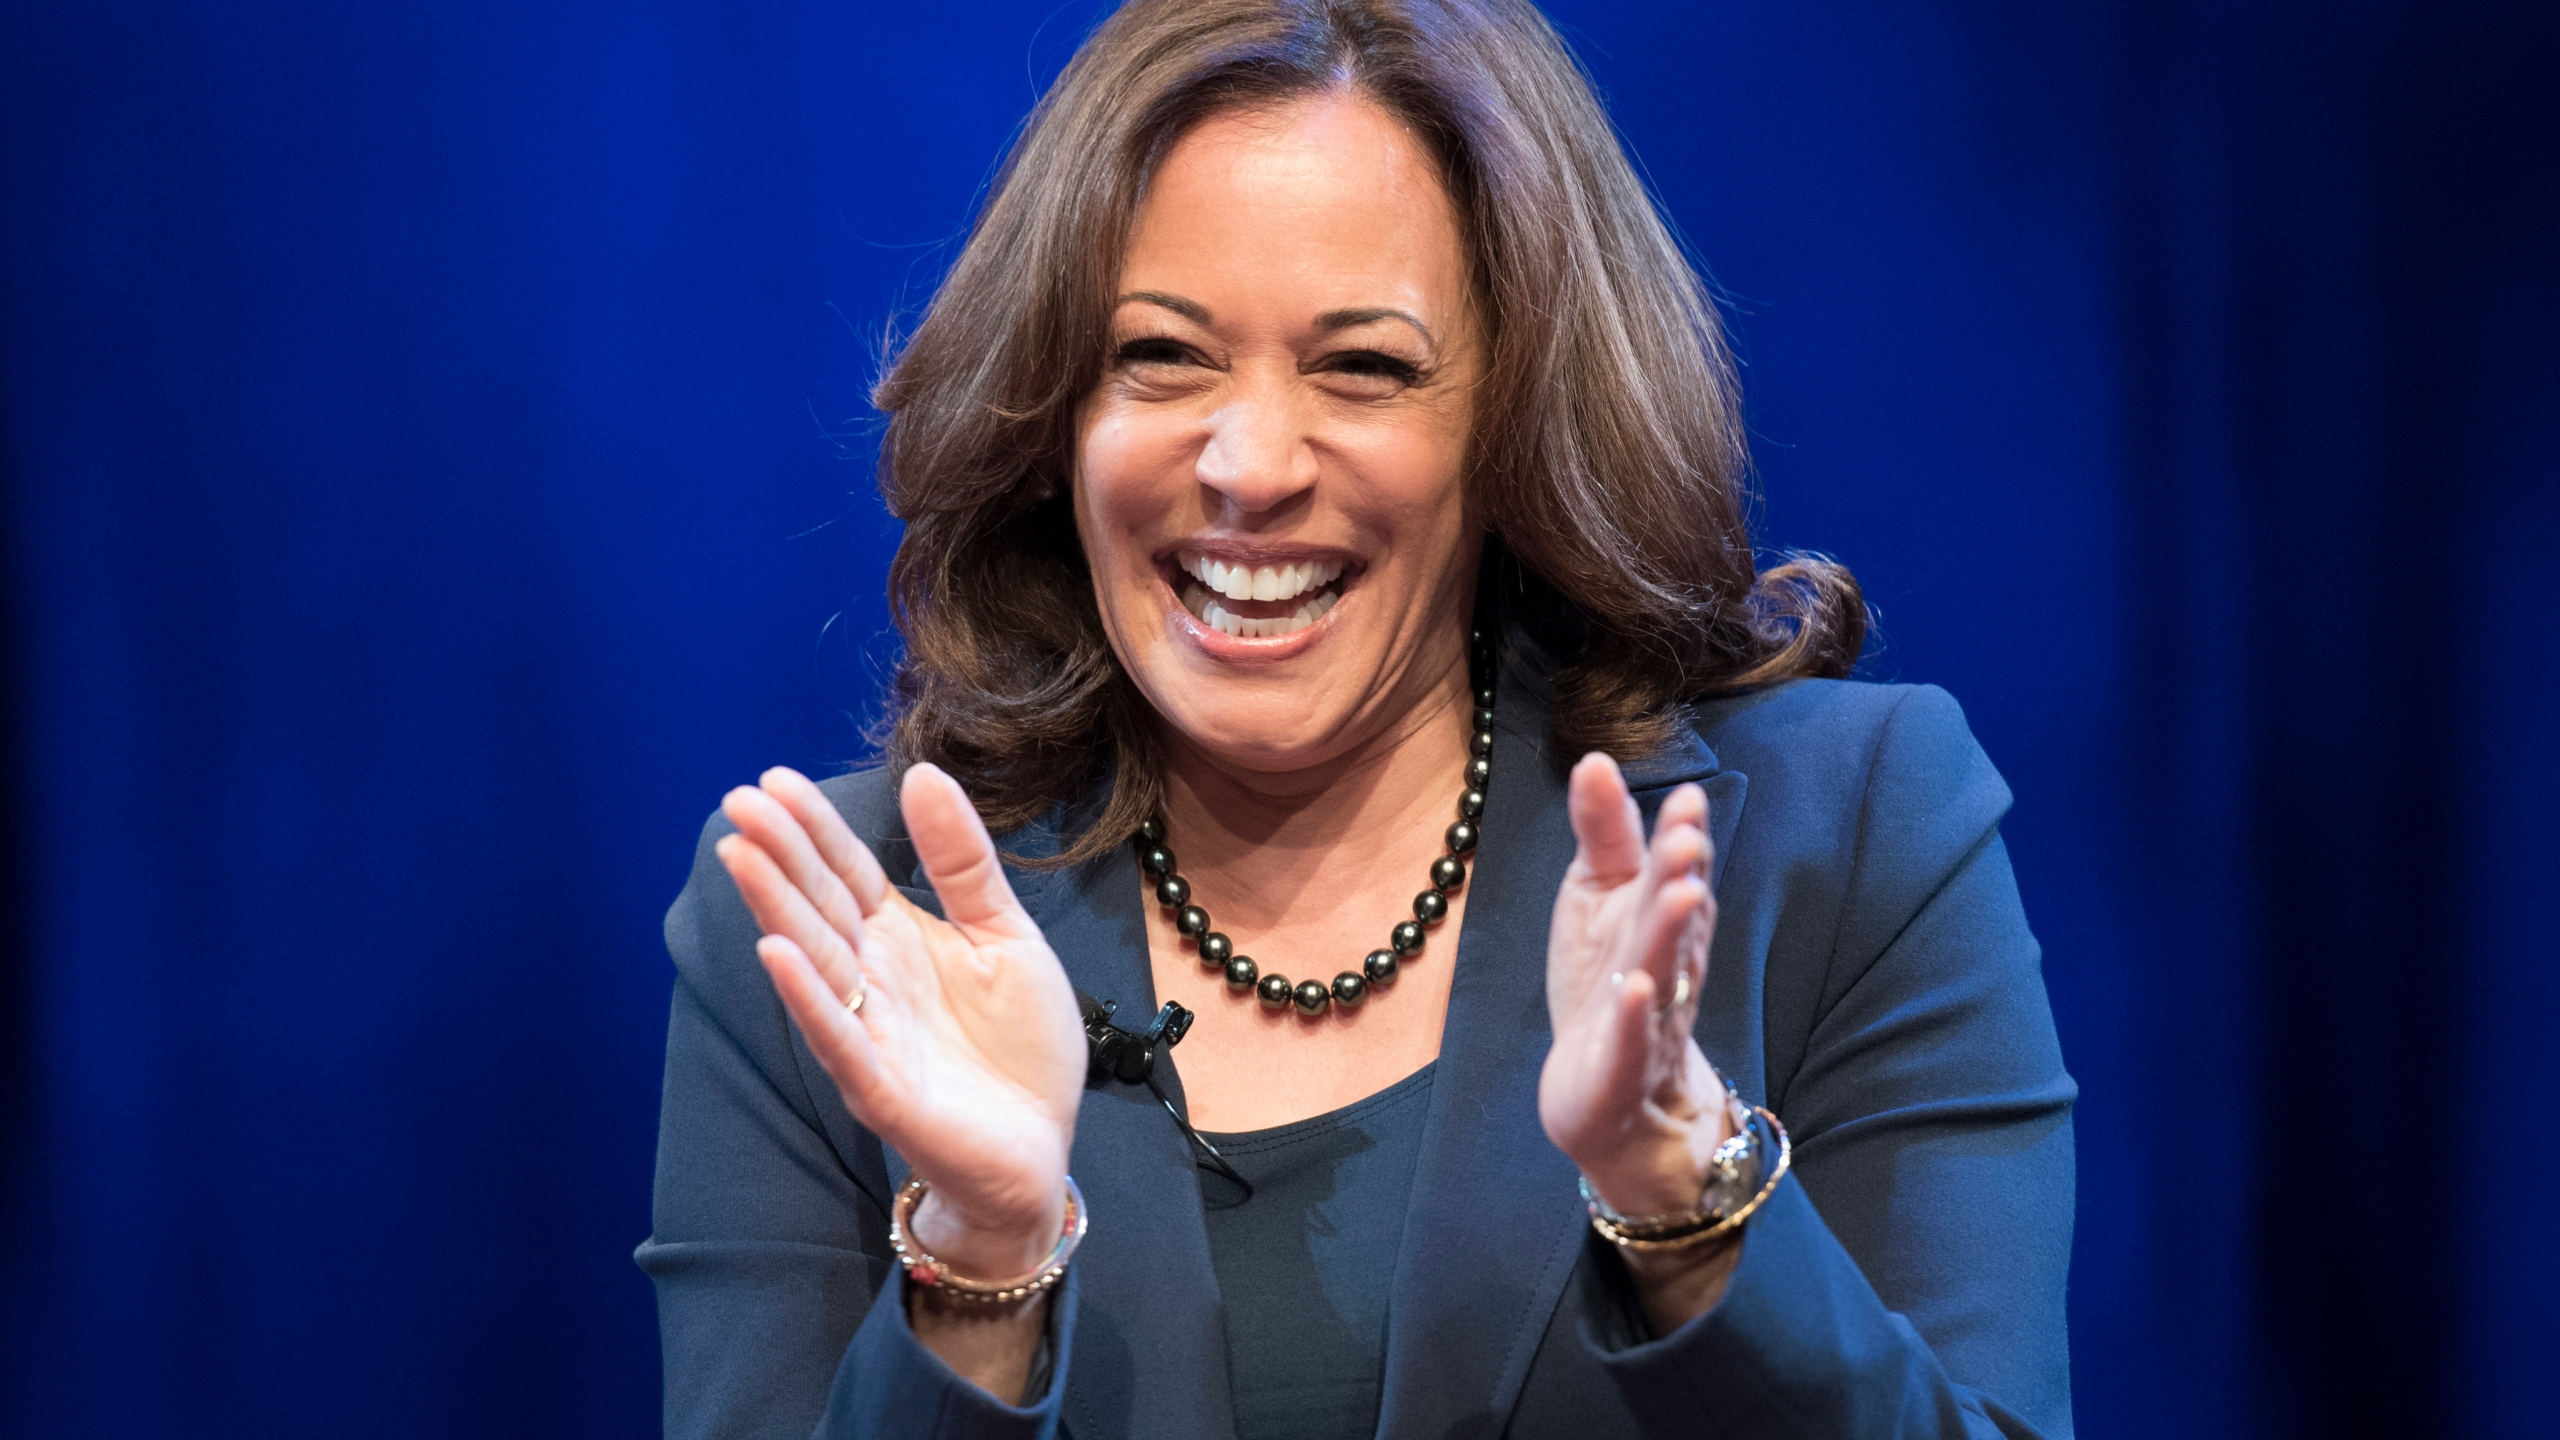 Election_2020_Kamala_Harris_45544-159532.jpg66616660